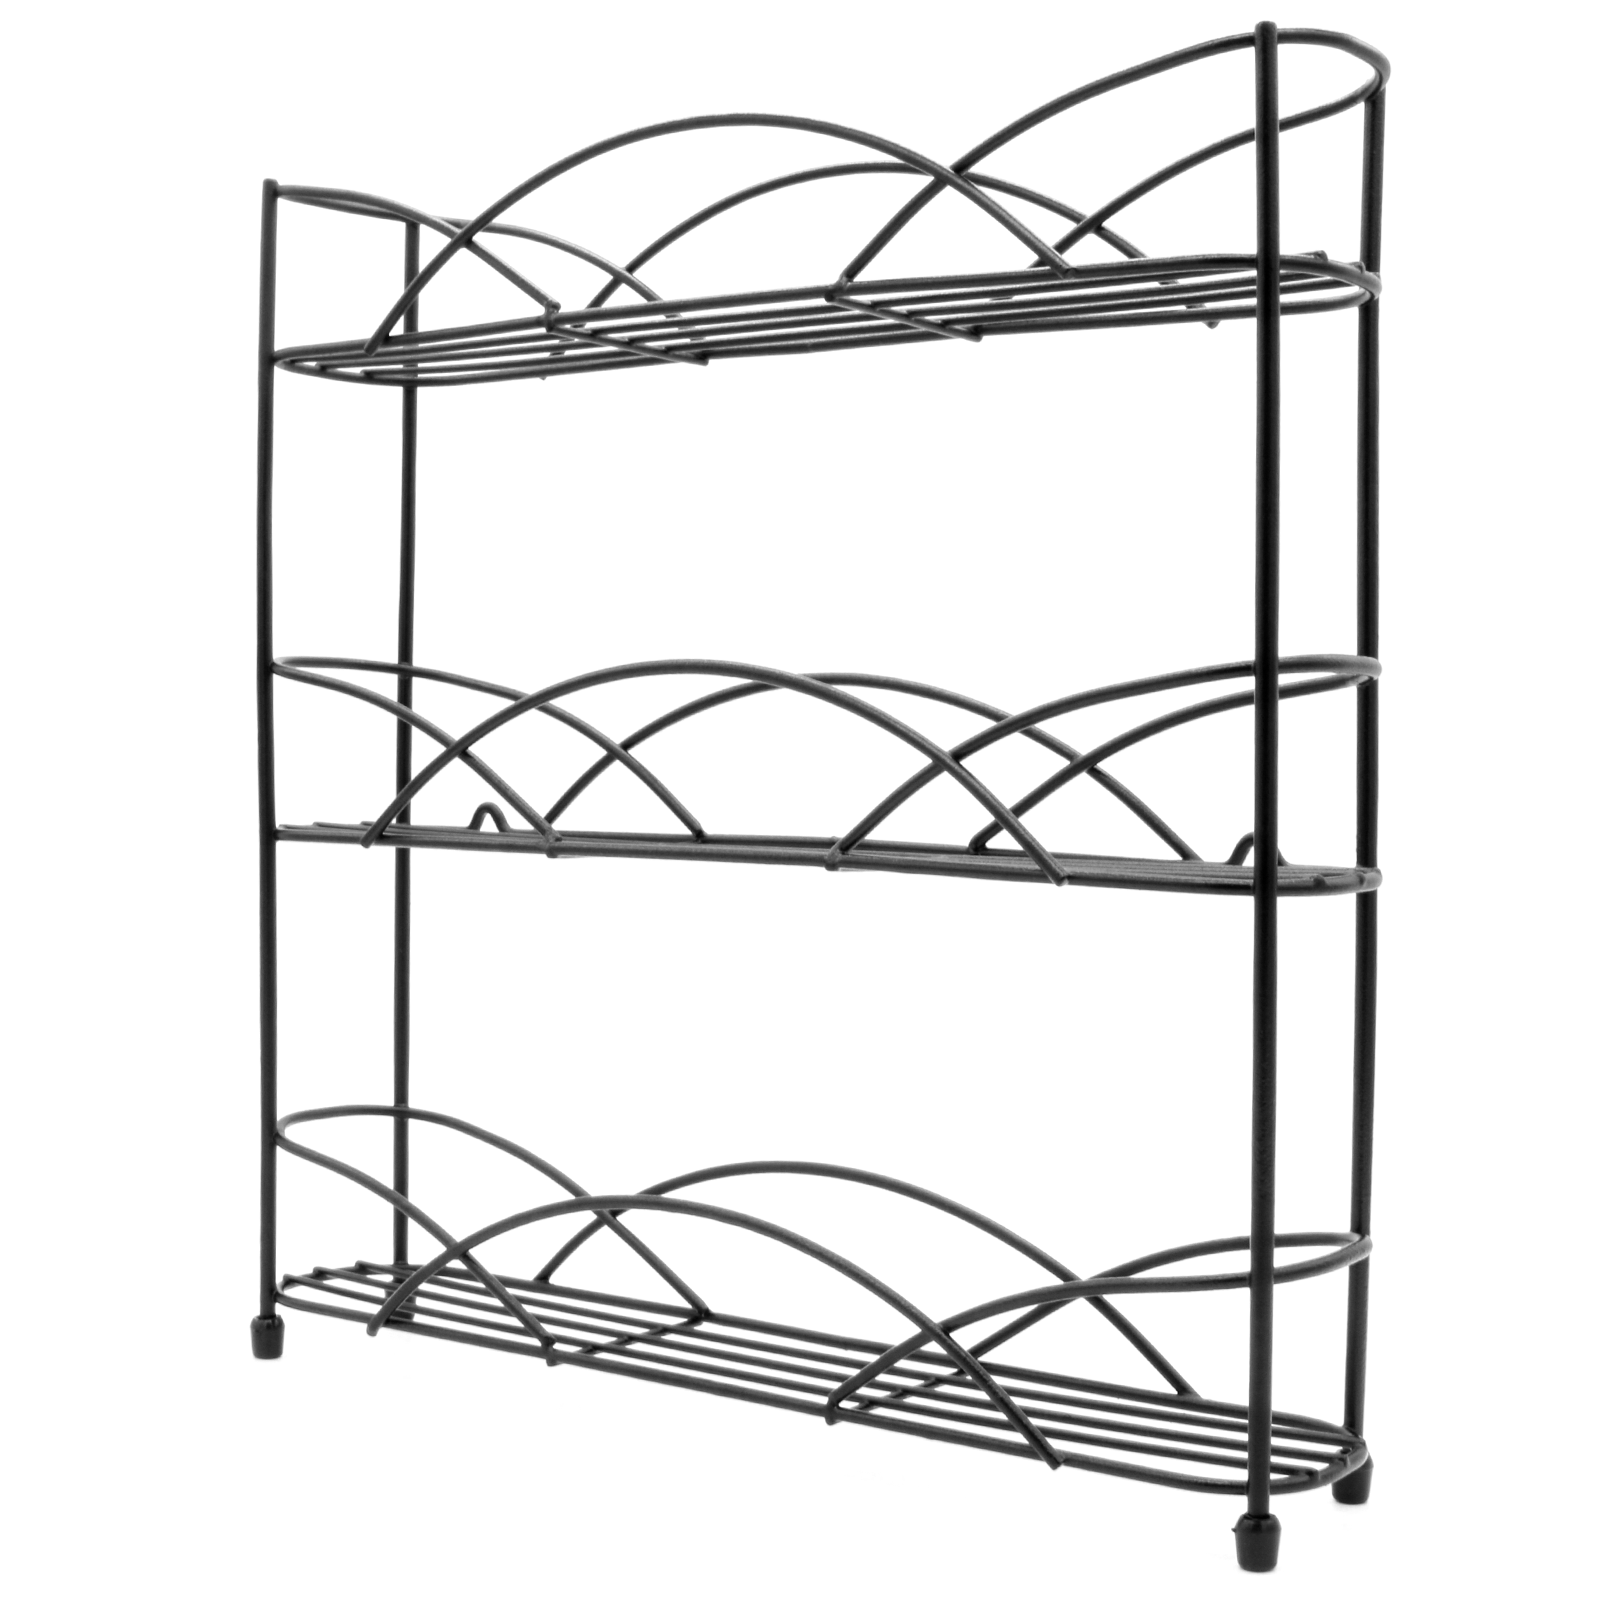 Free-Standing-3-Tier-Herb-amp-Spice-Rack-Non-slip-Universal-Fit-M-amp-W thumbnail 17